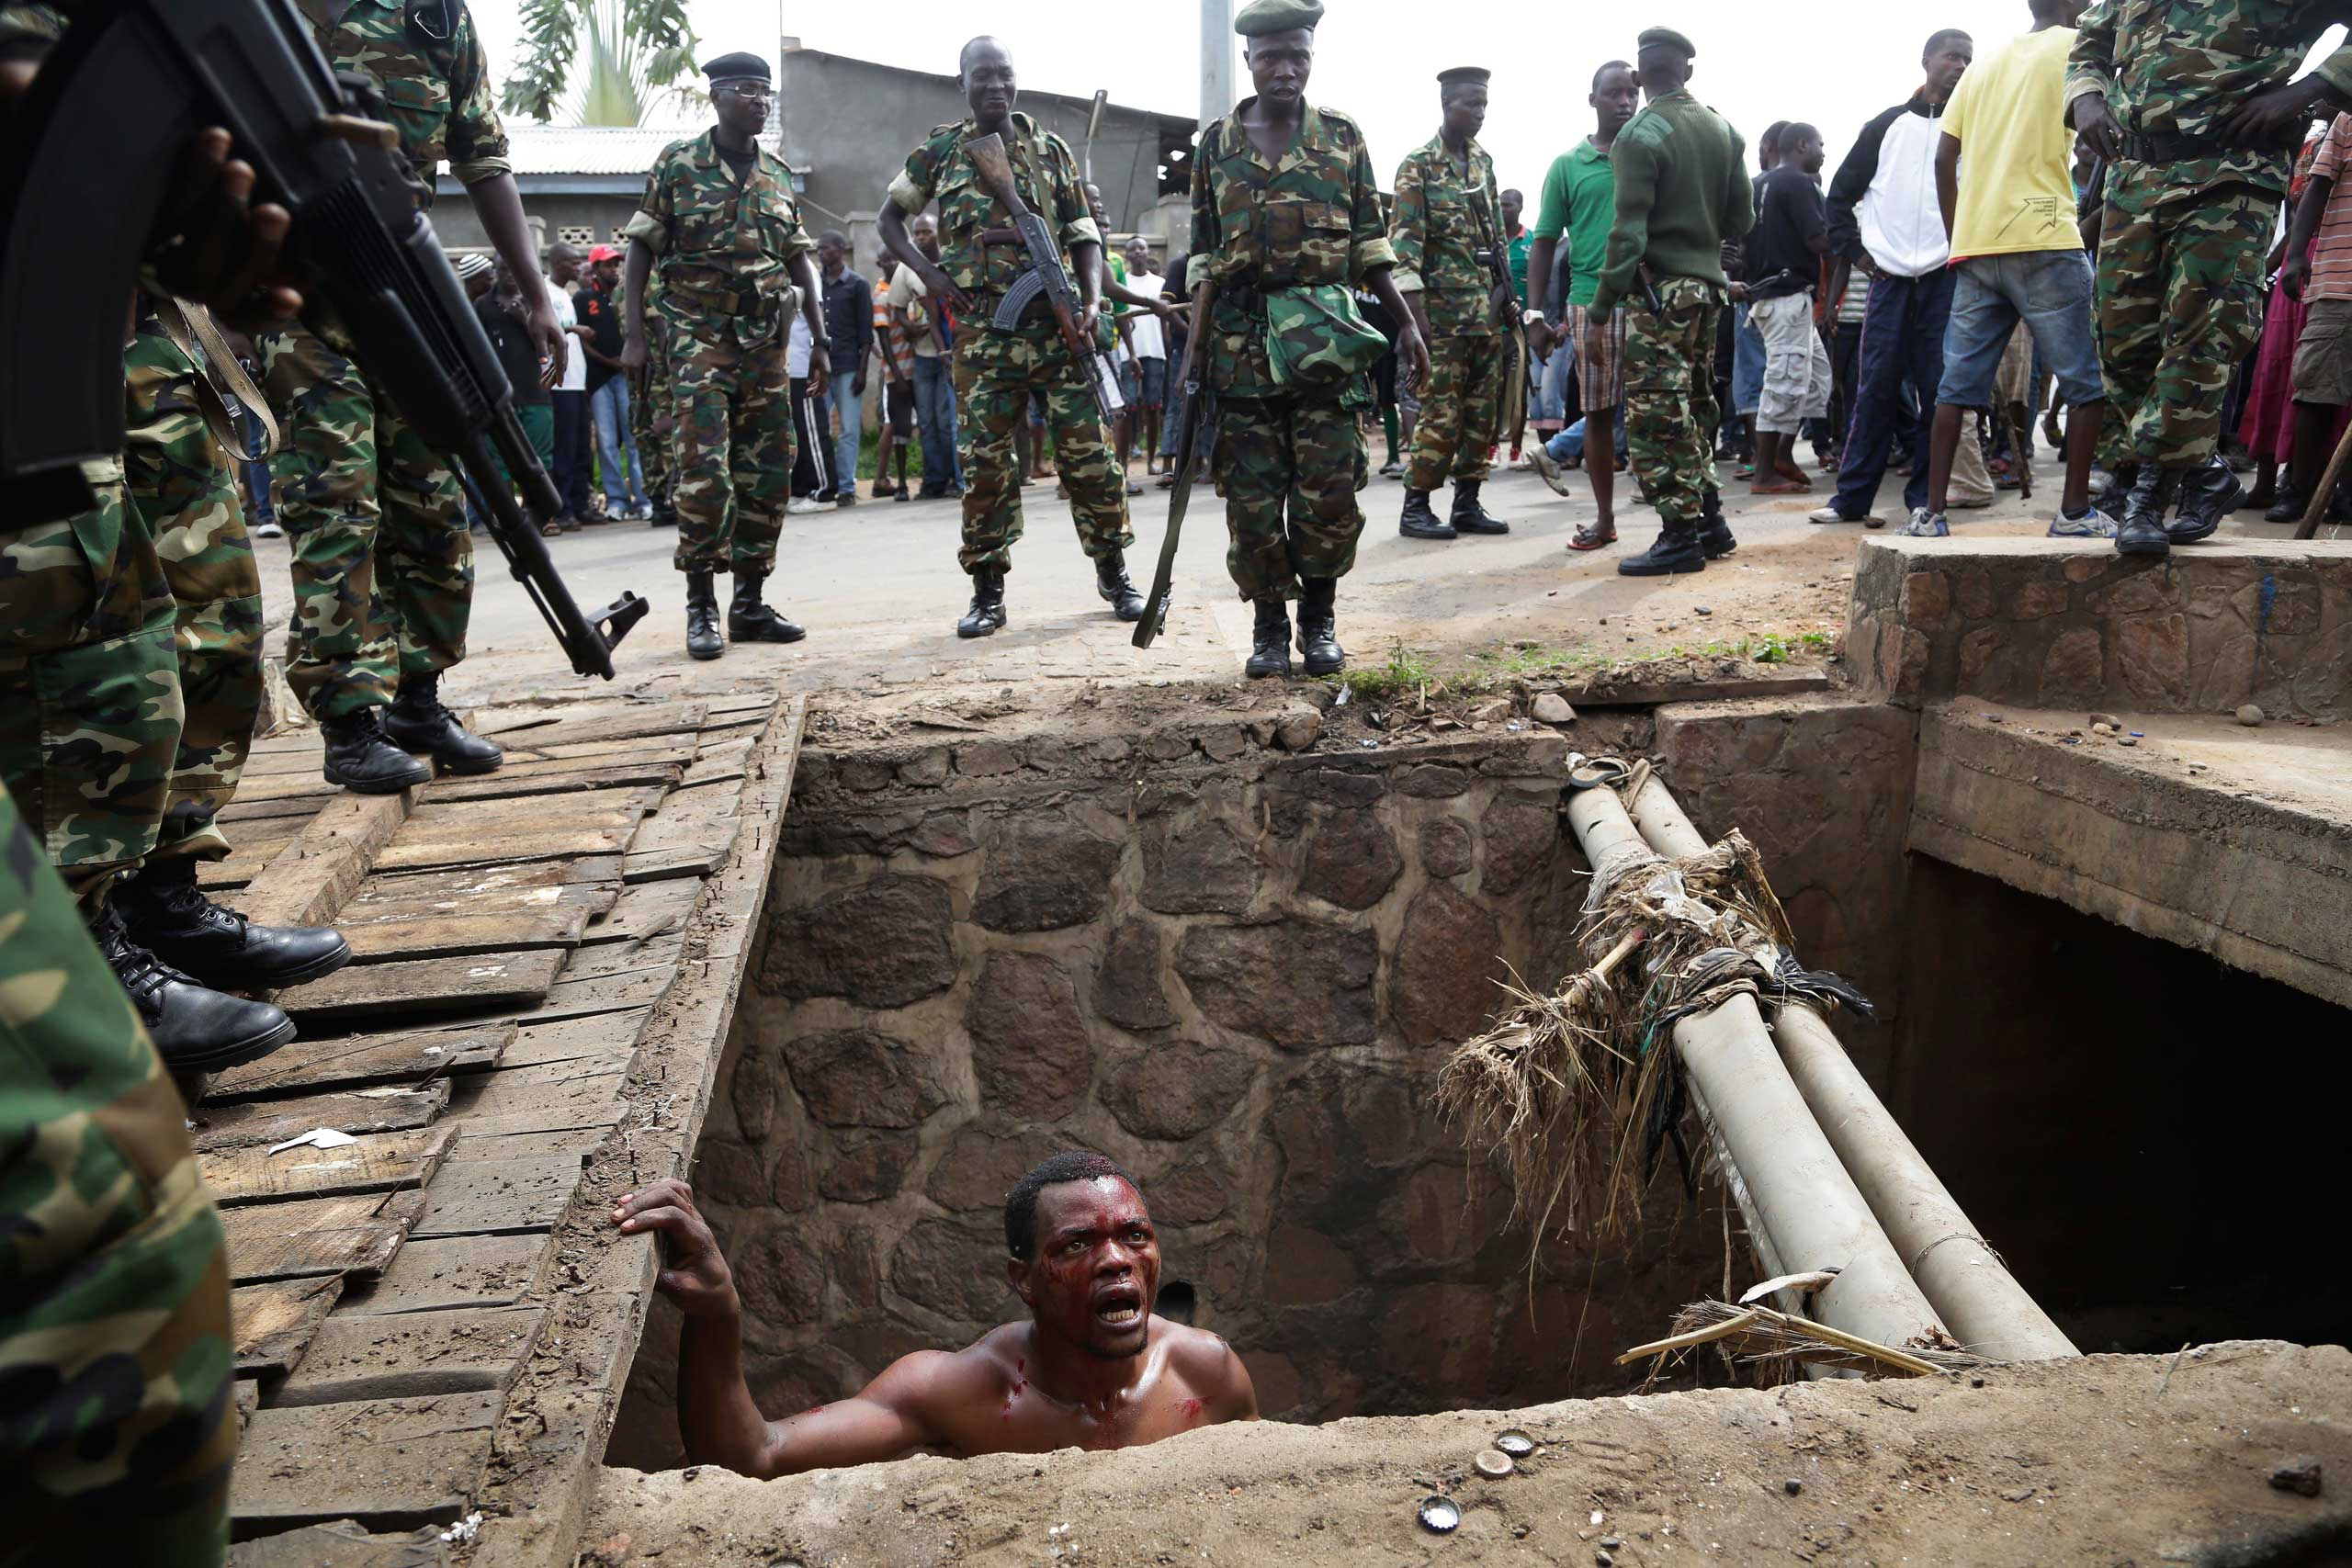 Niyonzima pleads with soldiers to protect him from a mob of demonstrators after he emerged from hiding in a sewer.